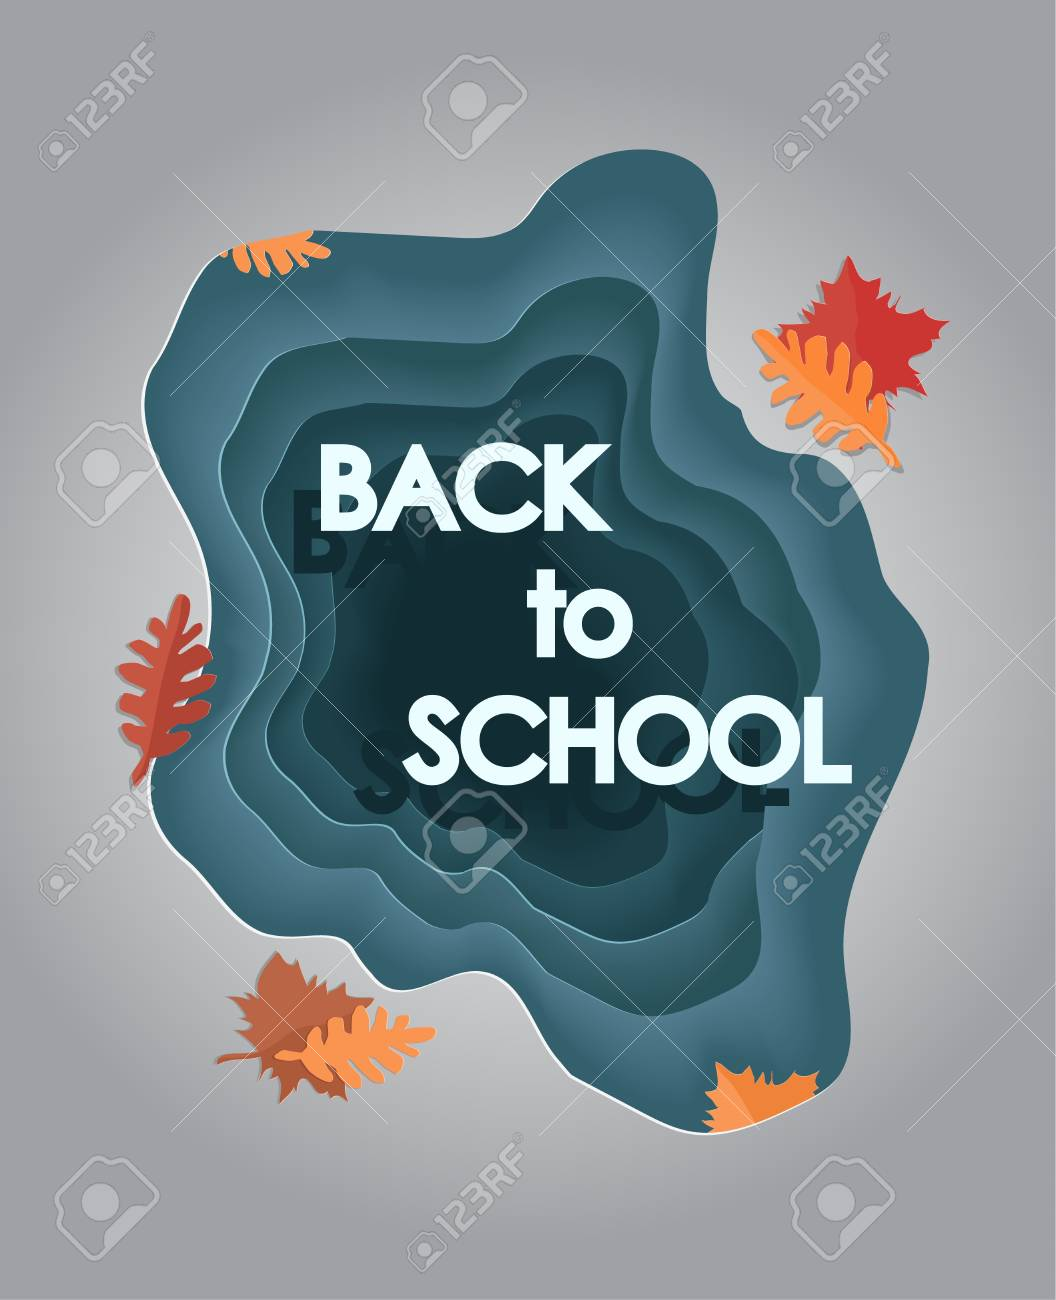 Back to school - paper cut vector illustration. 1 september card in craft style. Knowledge day. leaves fallen from the trees in autumn, lie on the asphalt near a puddle, after a rain. - 105018362